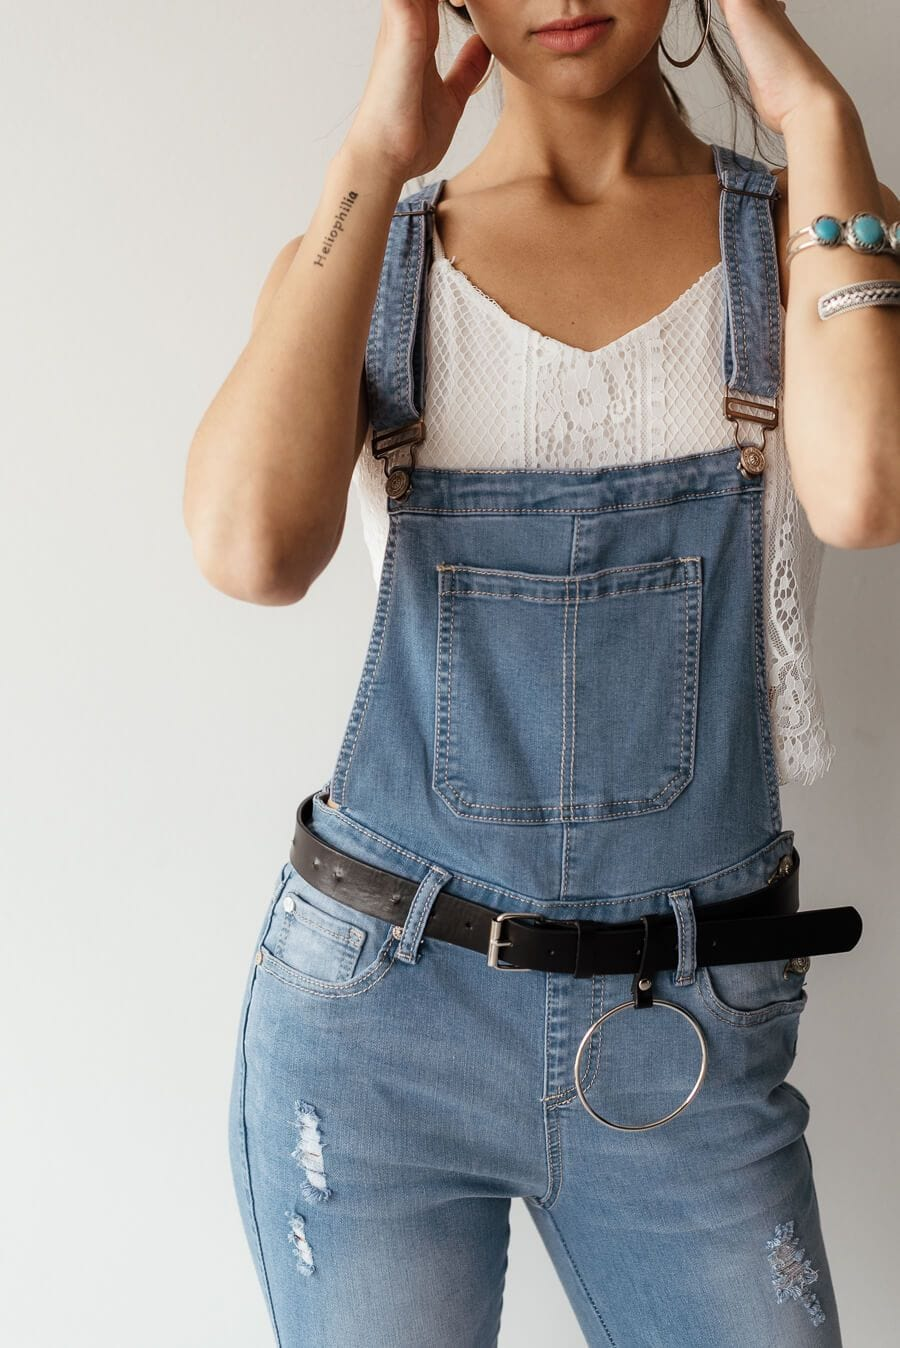 Smokin' Love Overalls